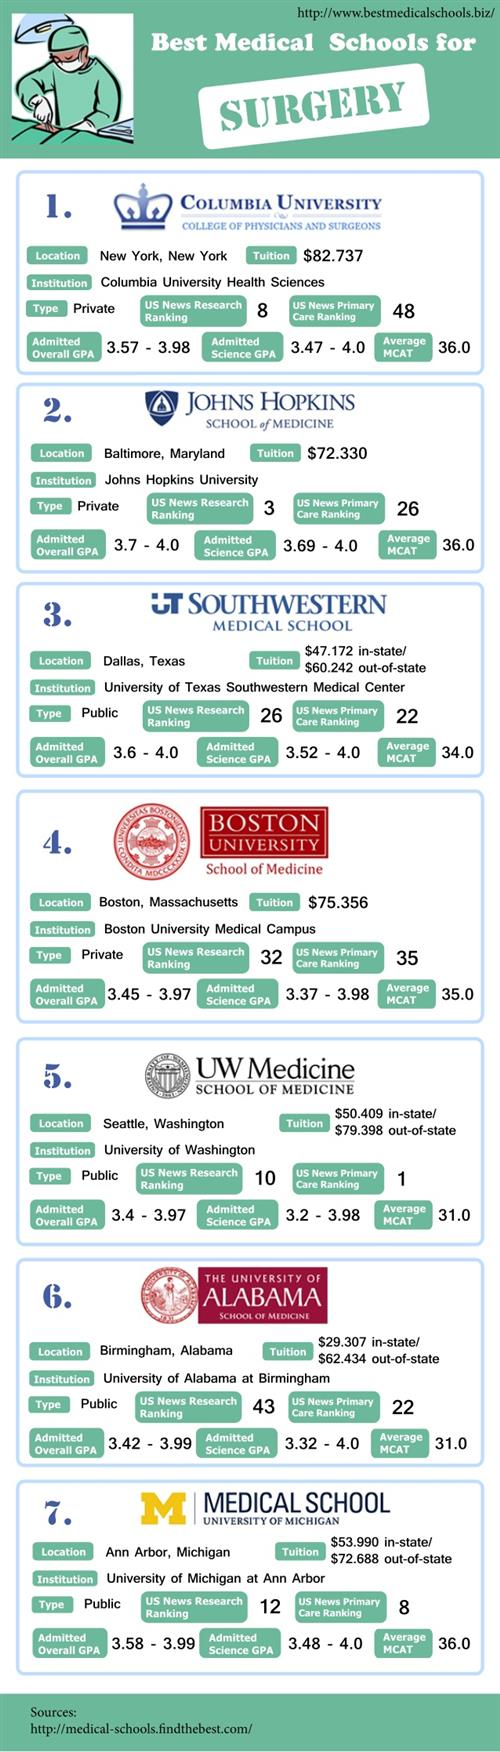 Best Medical Schools for Surgery